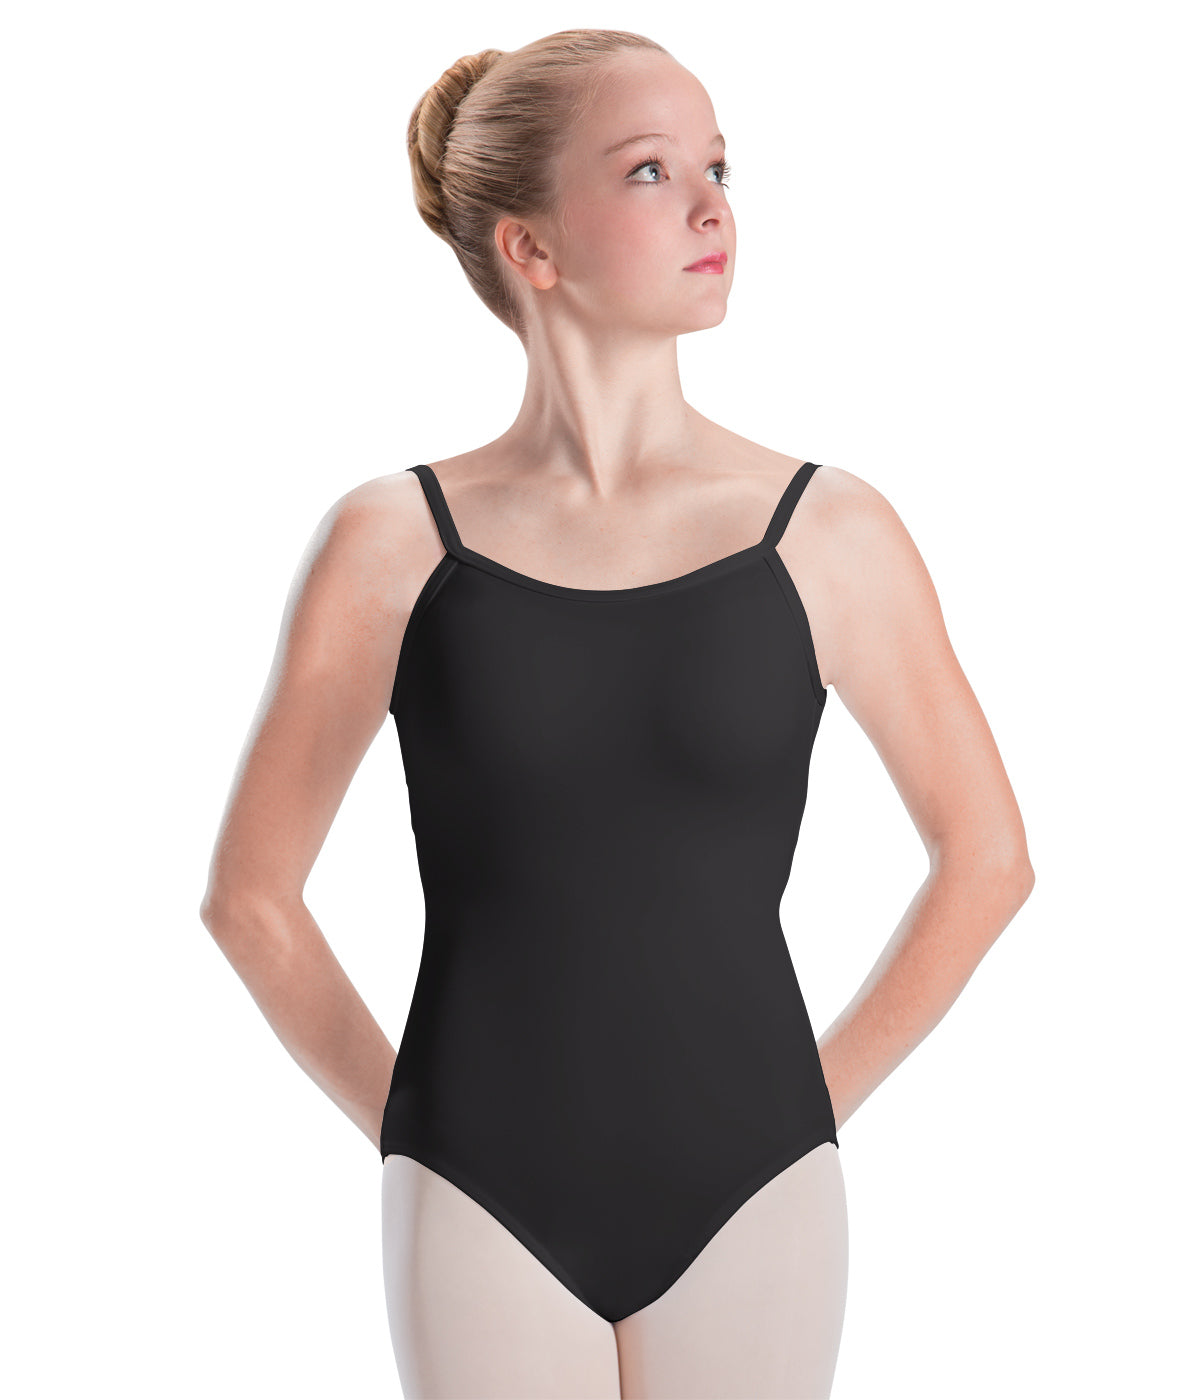 Motionwear X-Back Camisole Leotard - 2604